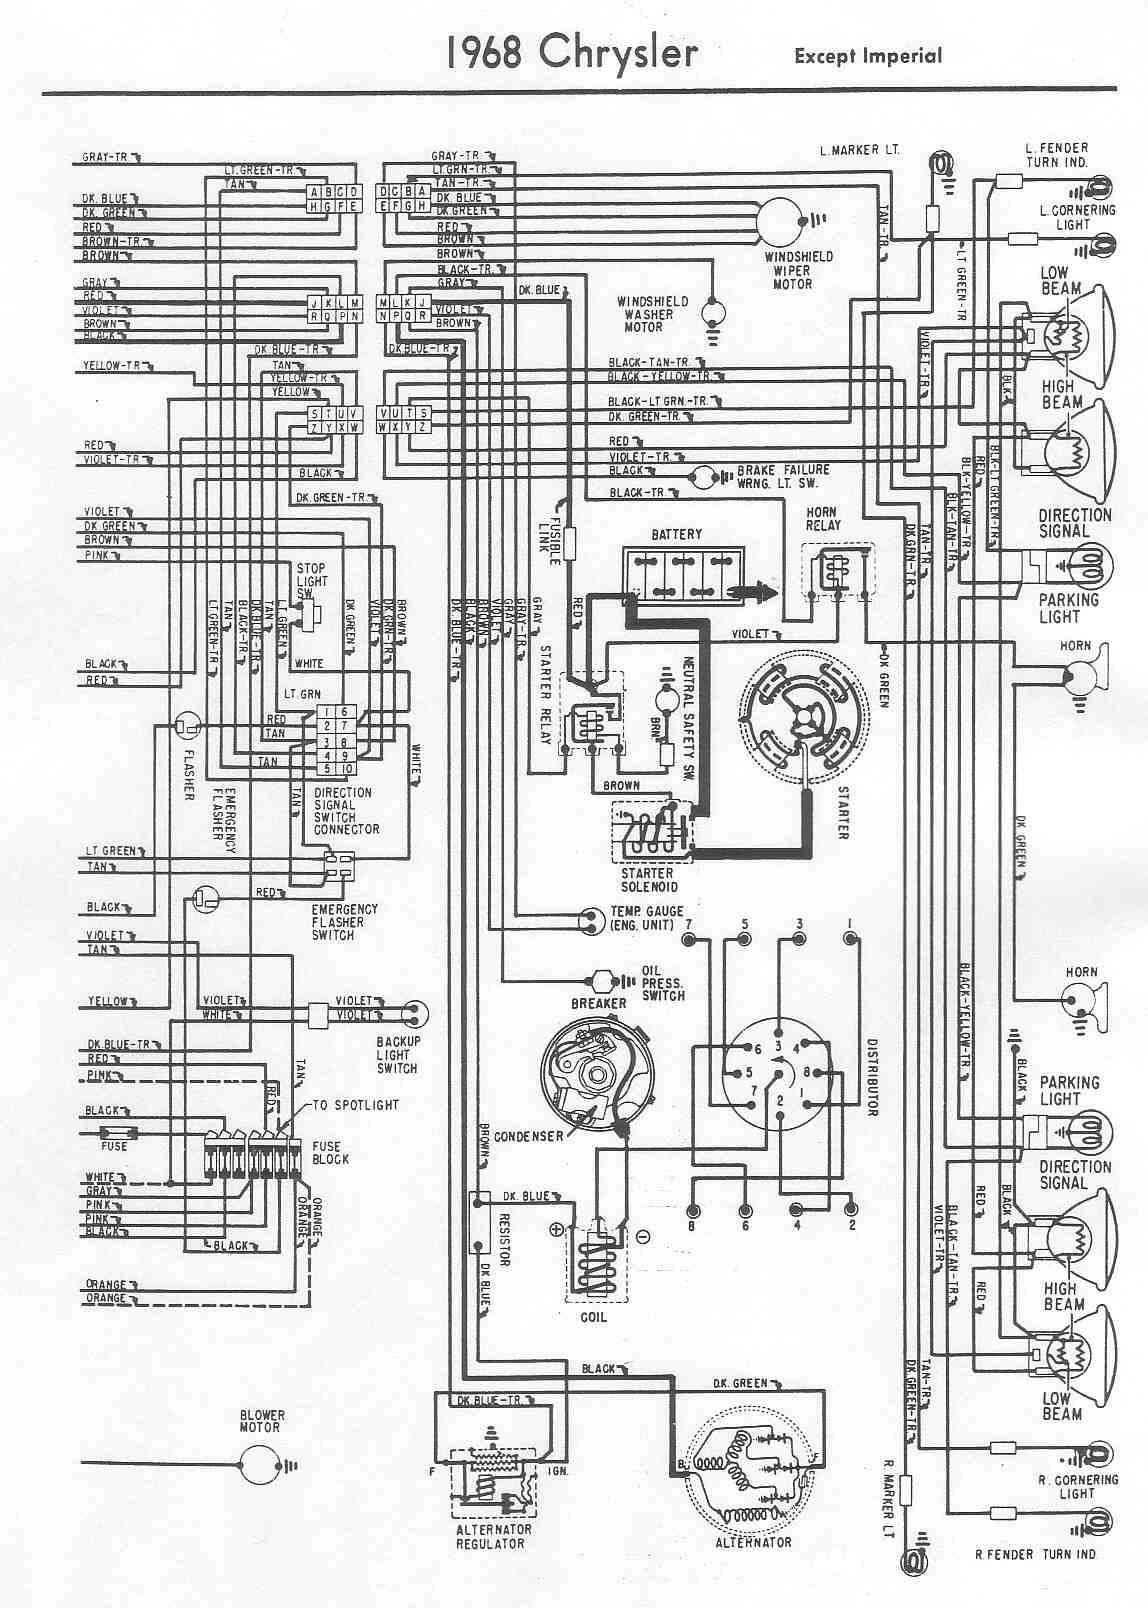 1968 Pontiac Gto Headlight Wiring Diagram Schematic 65 For 1970 Library1966 Wiper Trusted